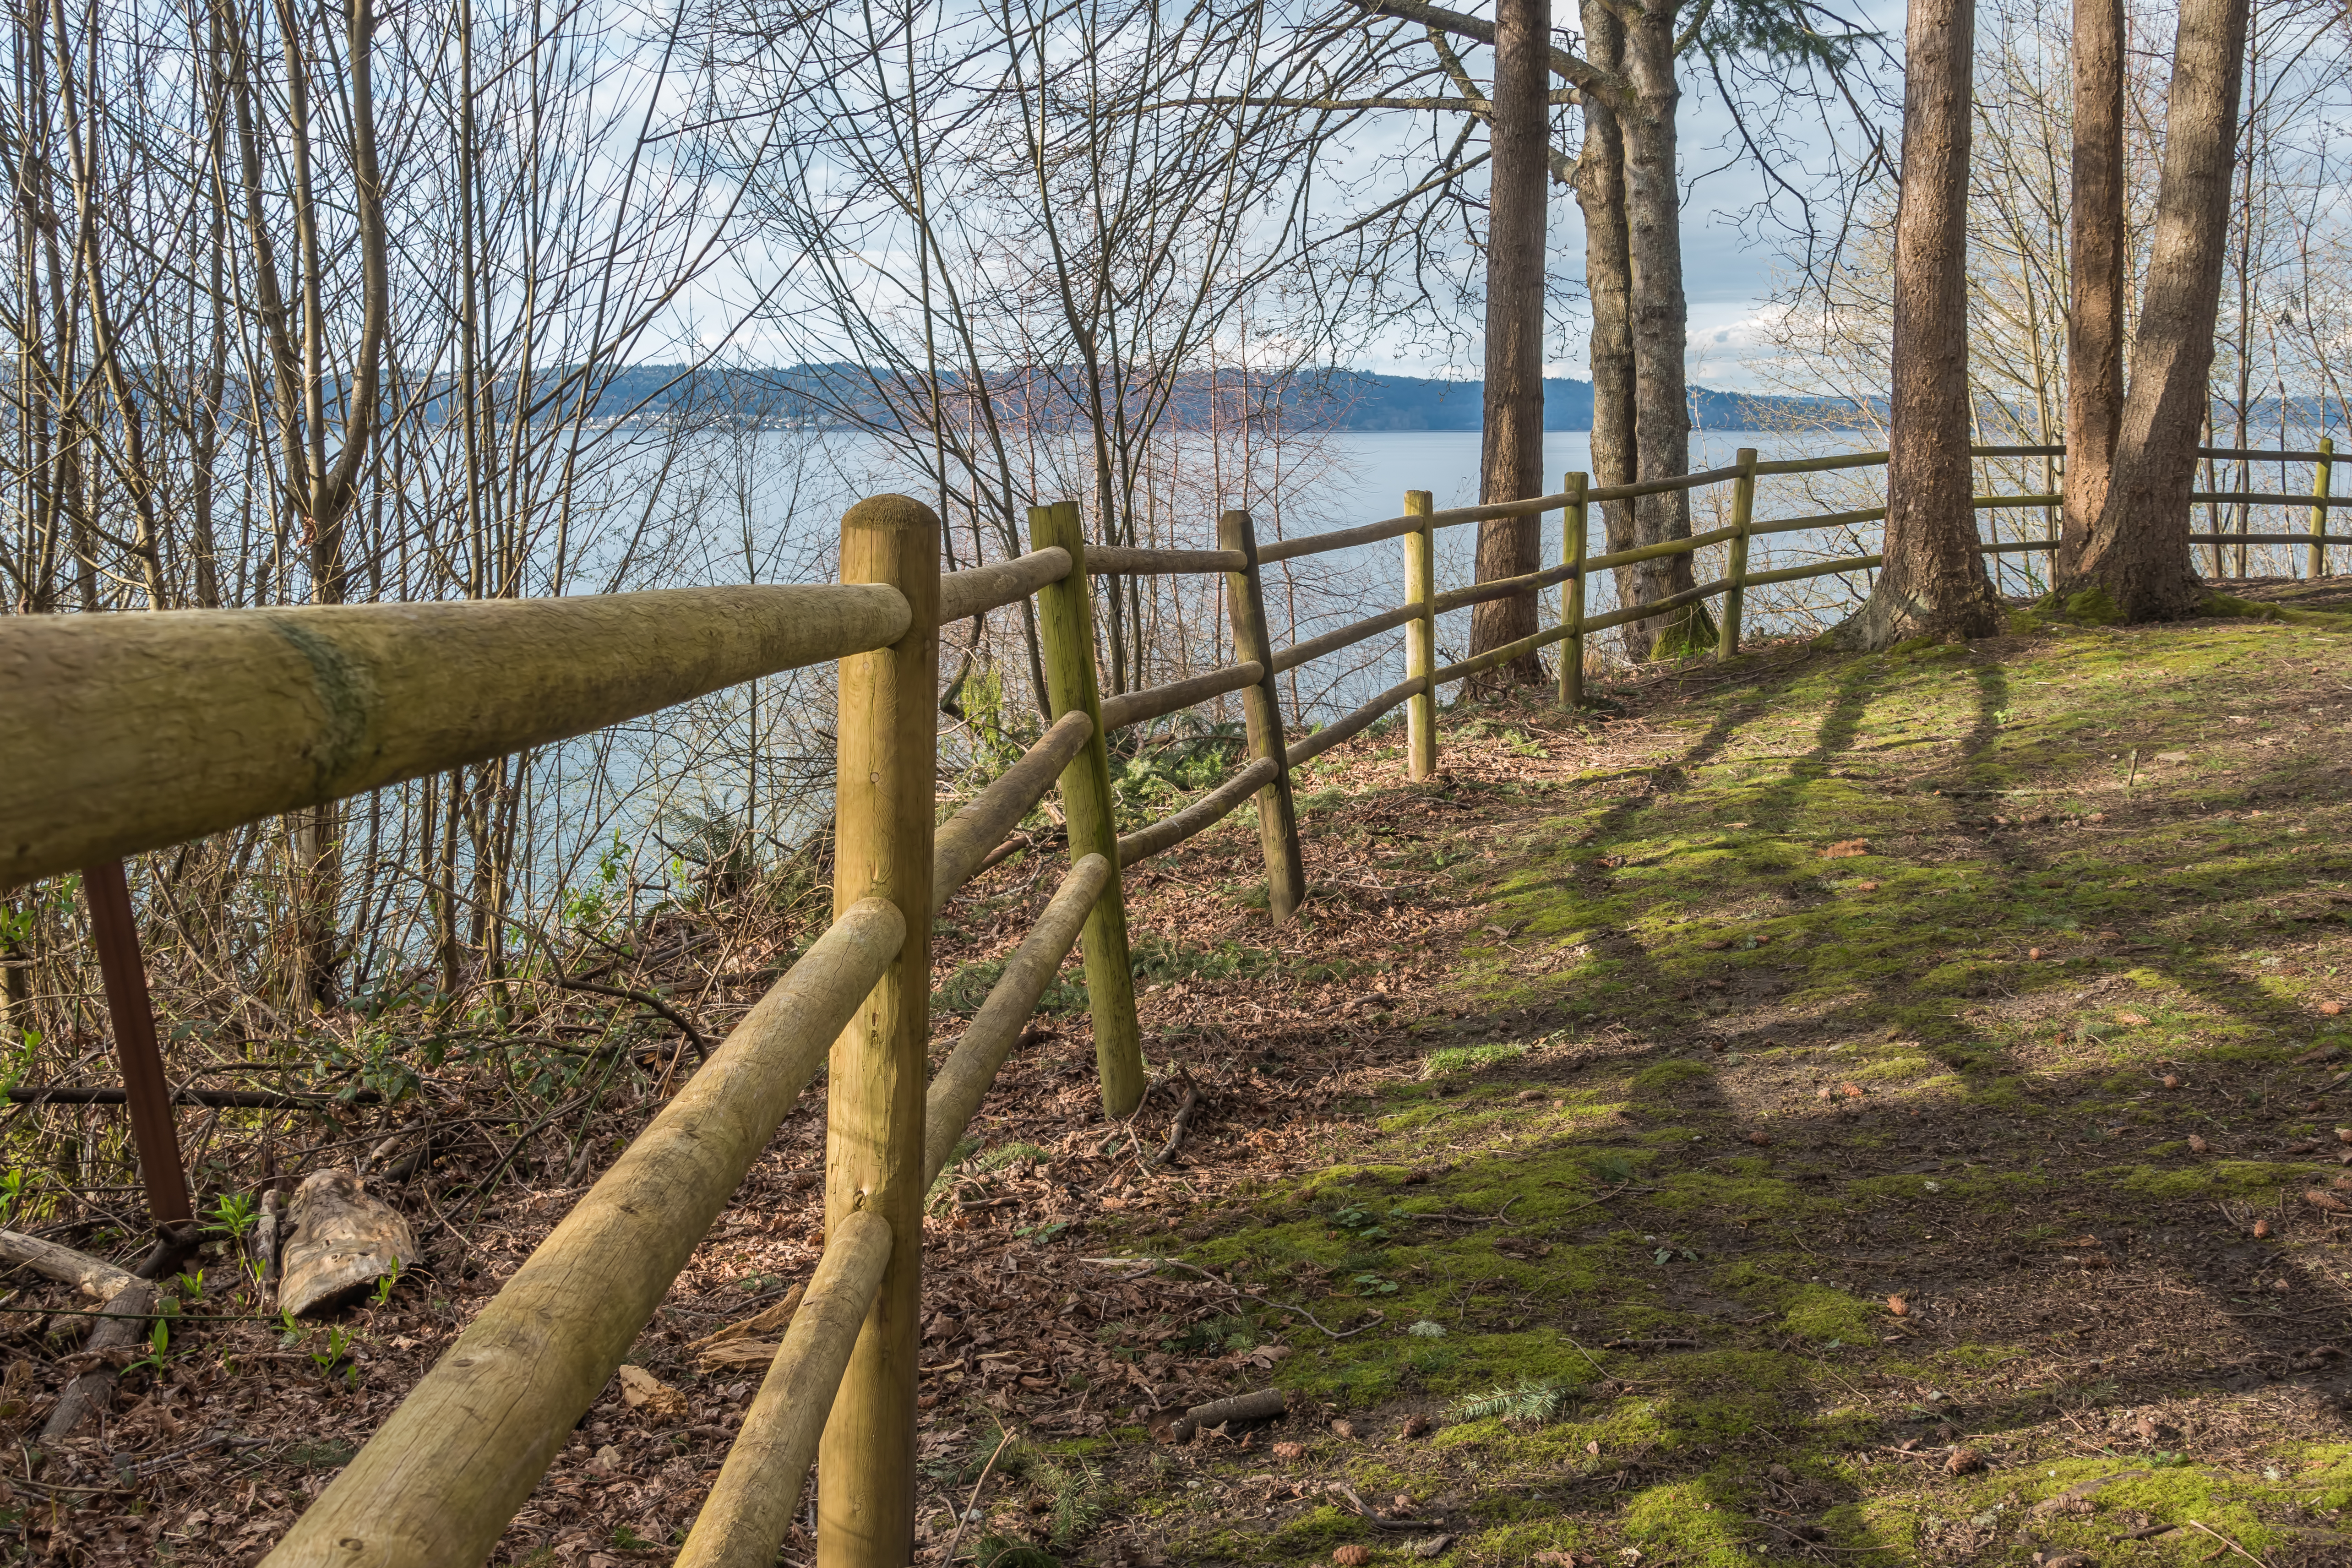 A log fence curves along the side of a bluff with a view of water, with mountains in the distance.